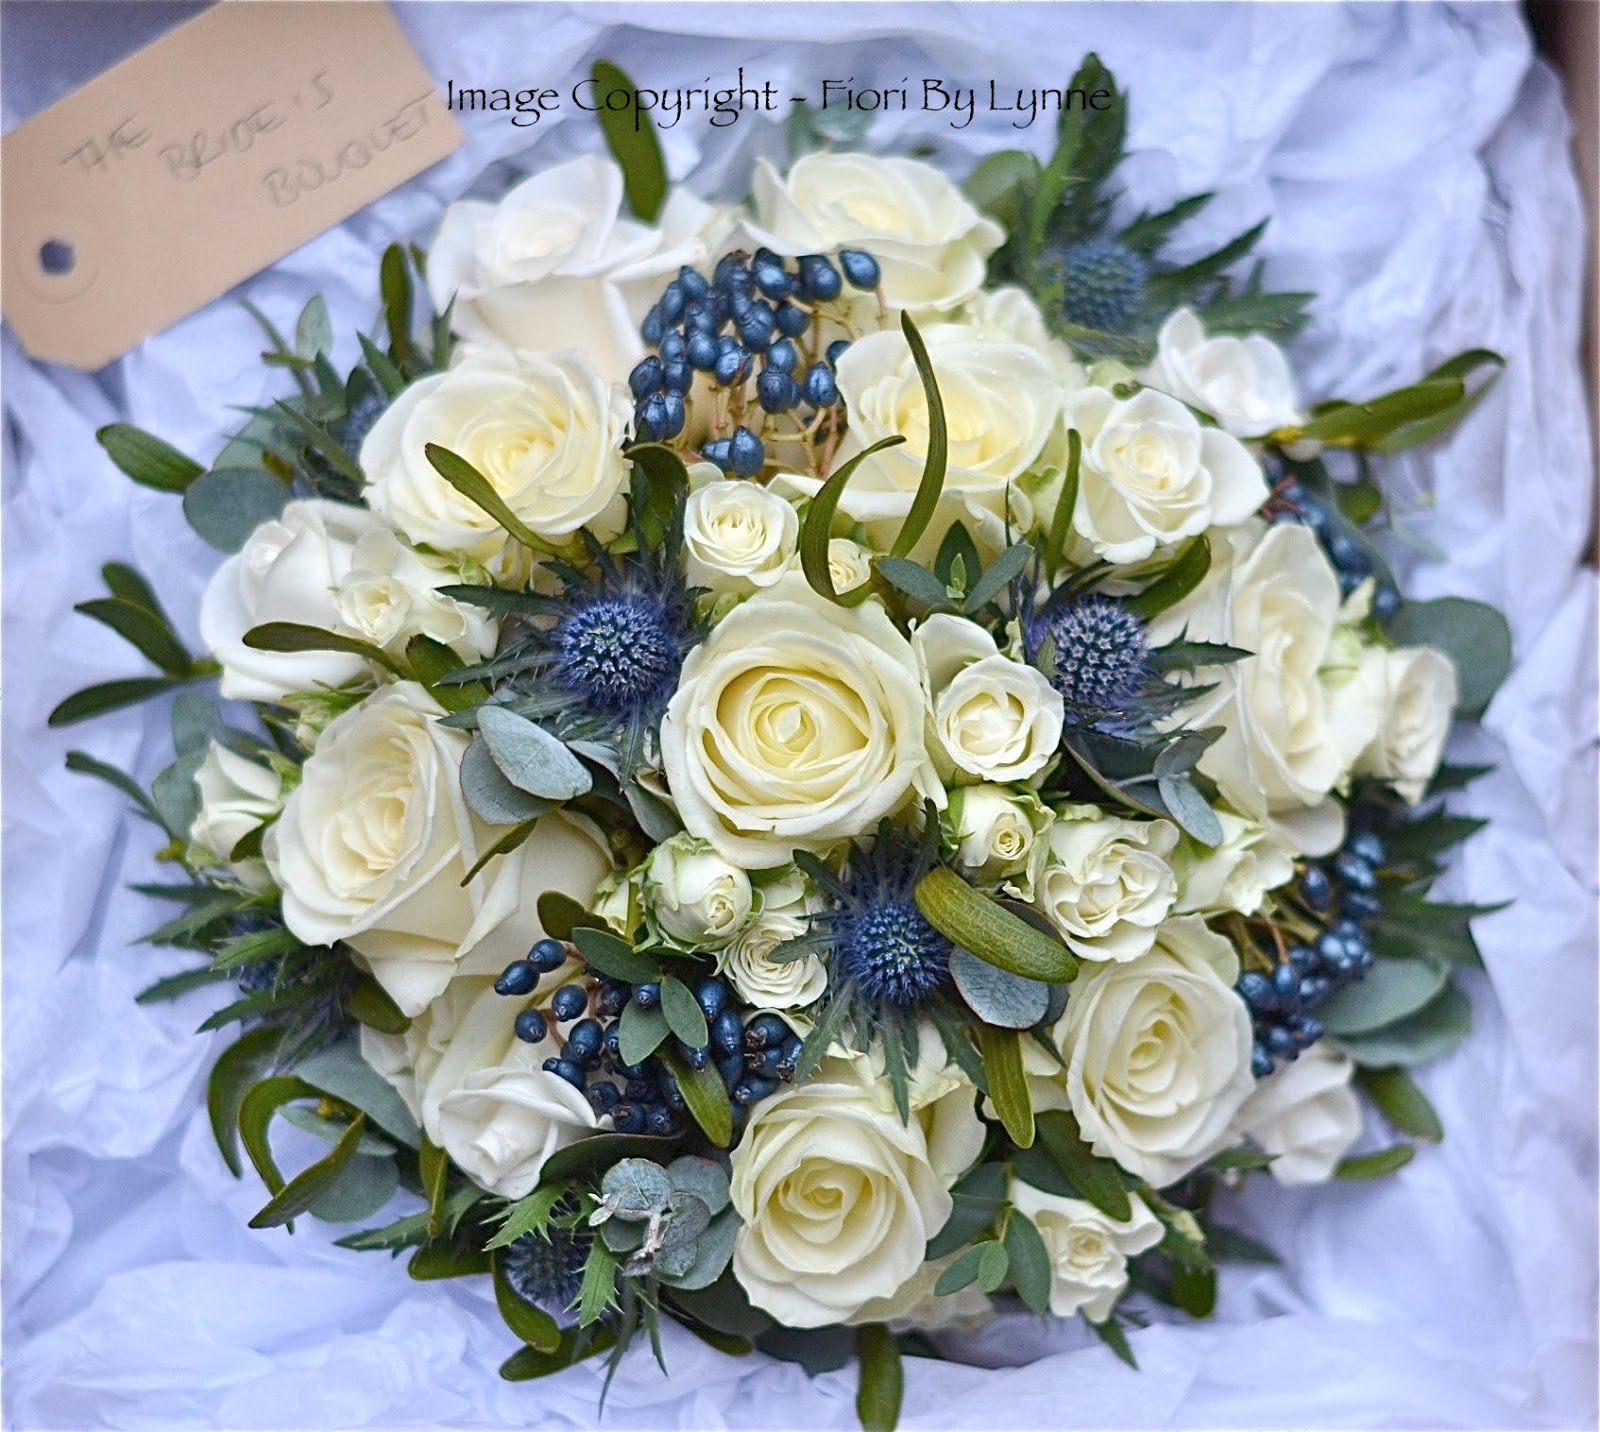 Wedding Bouquets With Blue Flowers: Wedding Flowers Blog: Laura's Christmas Wedding Flowers